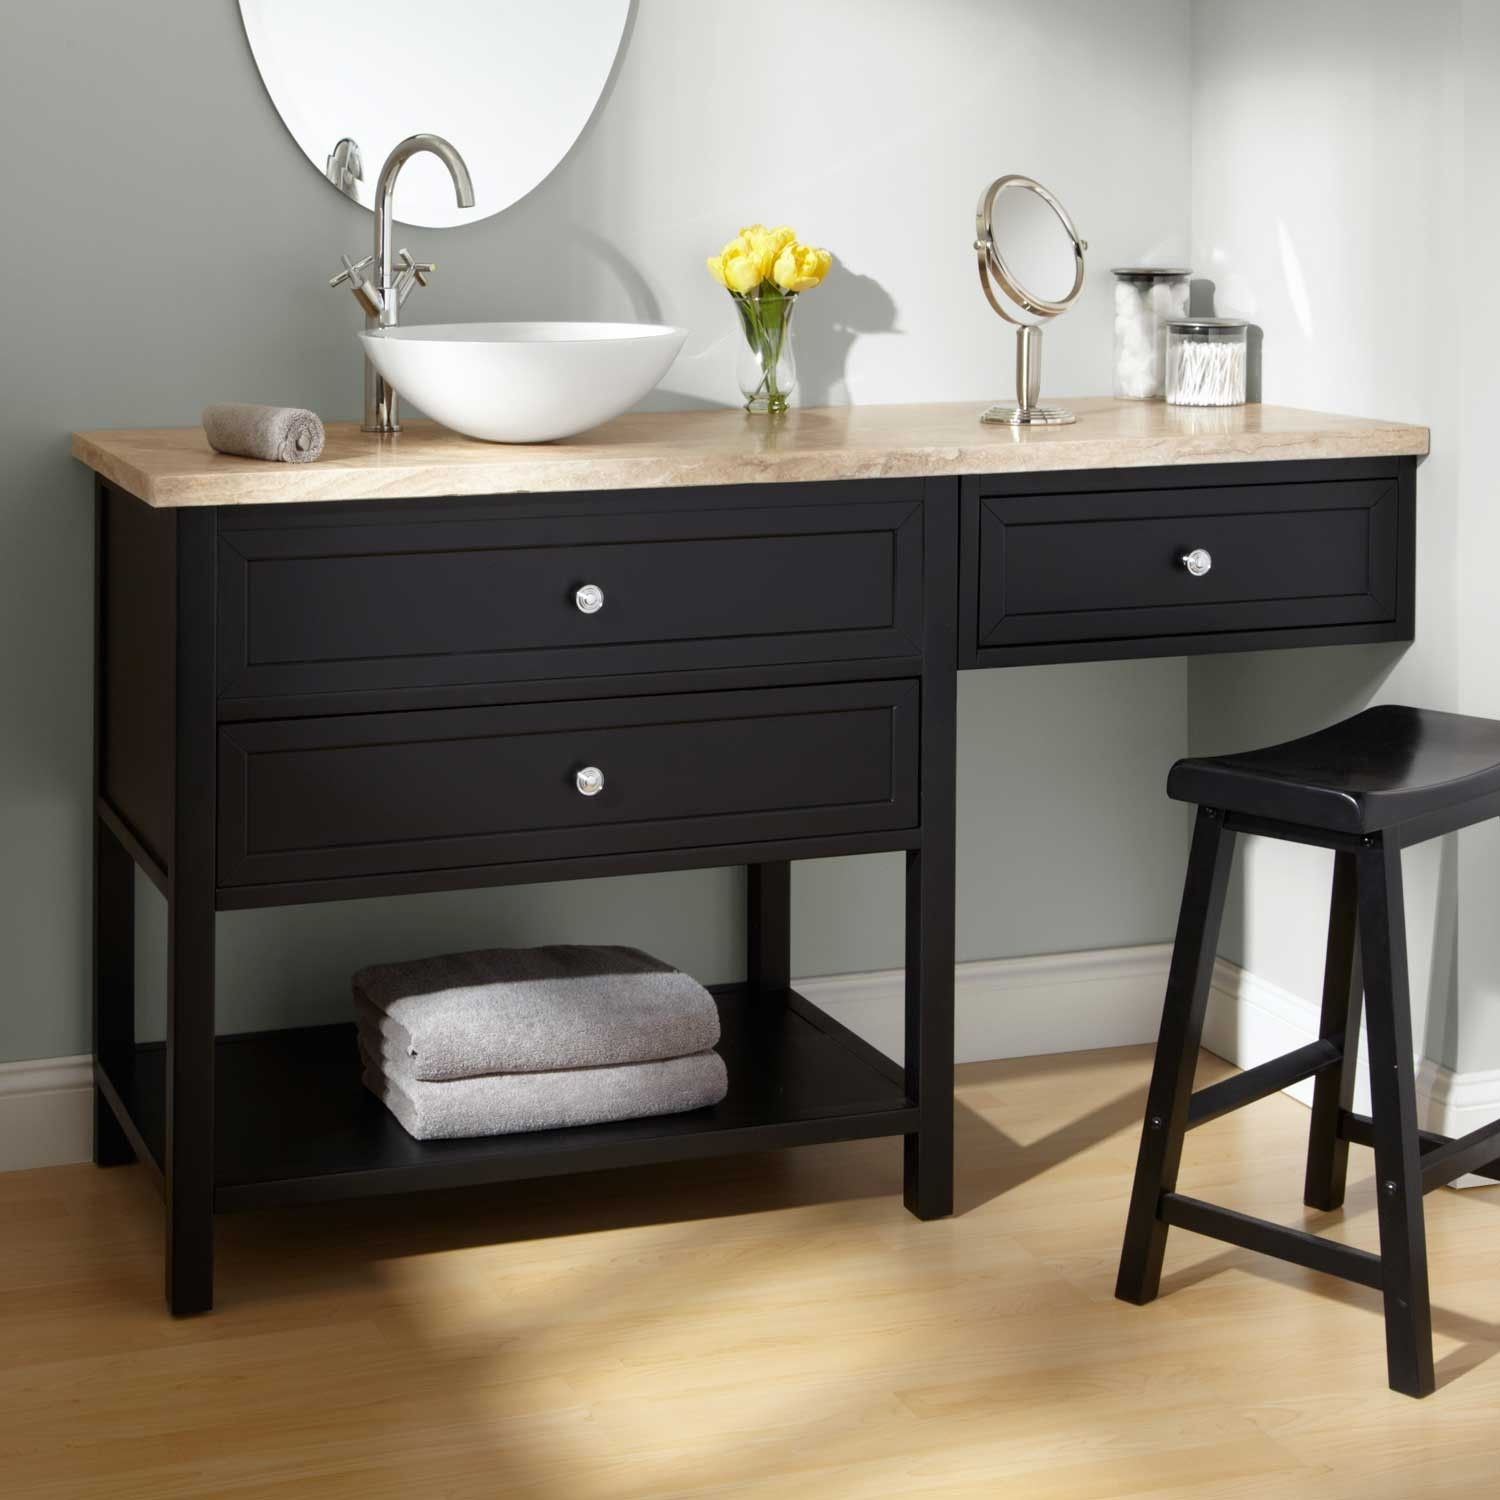 "Bathroom Makeup Vanities bathroom makeup vanity and chair |  sink vanities / 60"" taren"